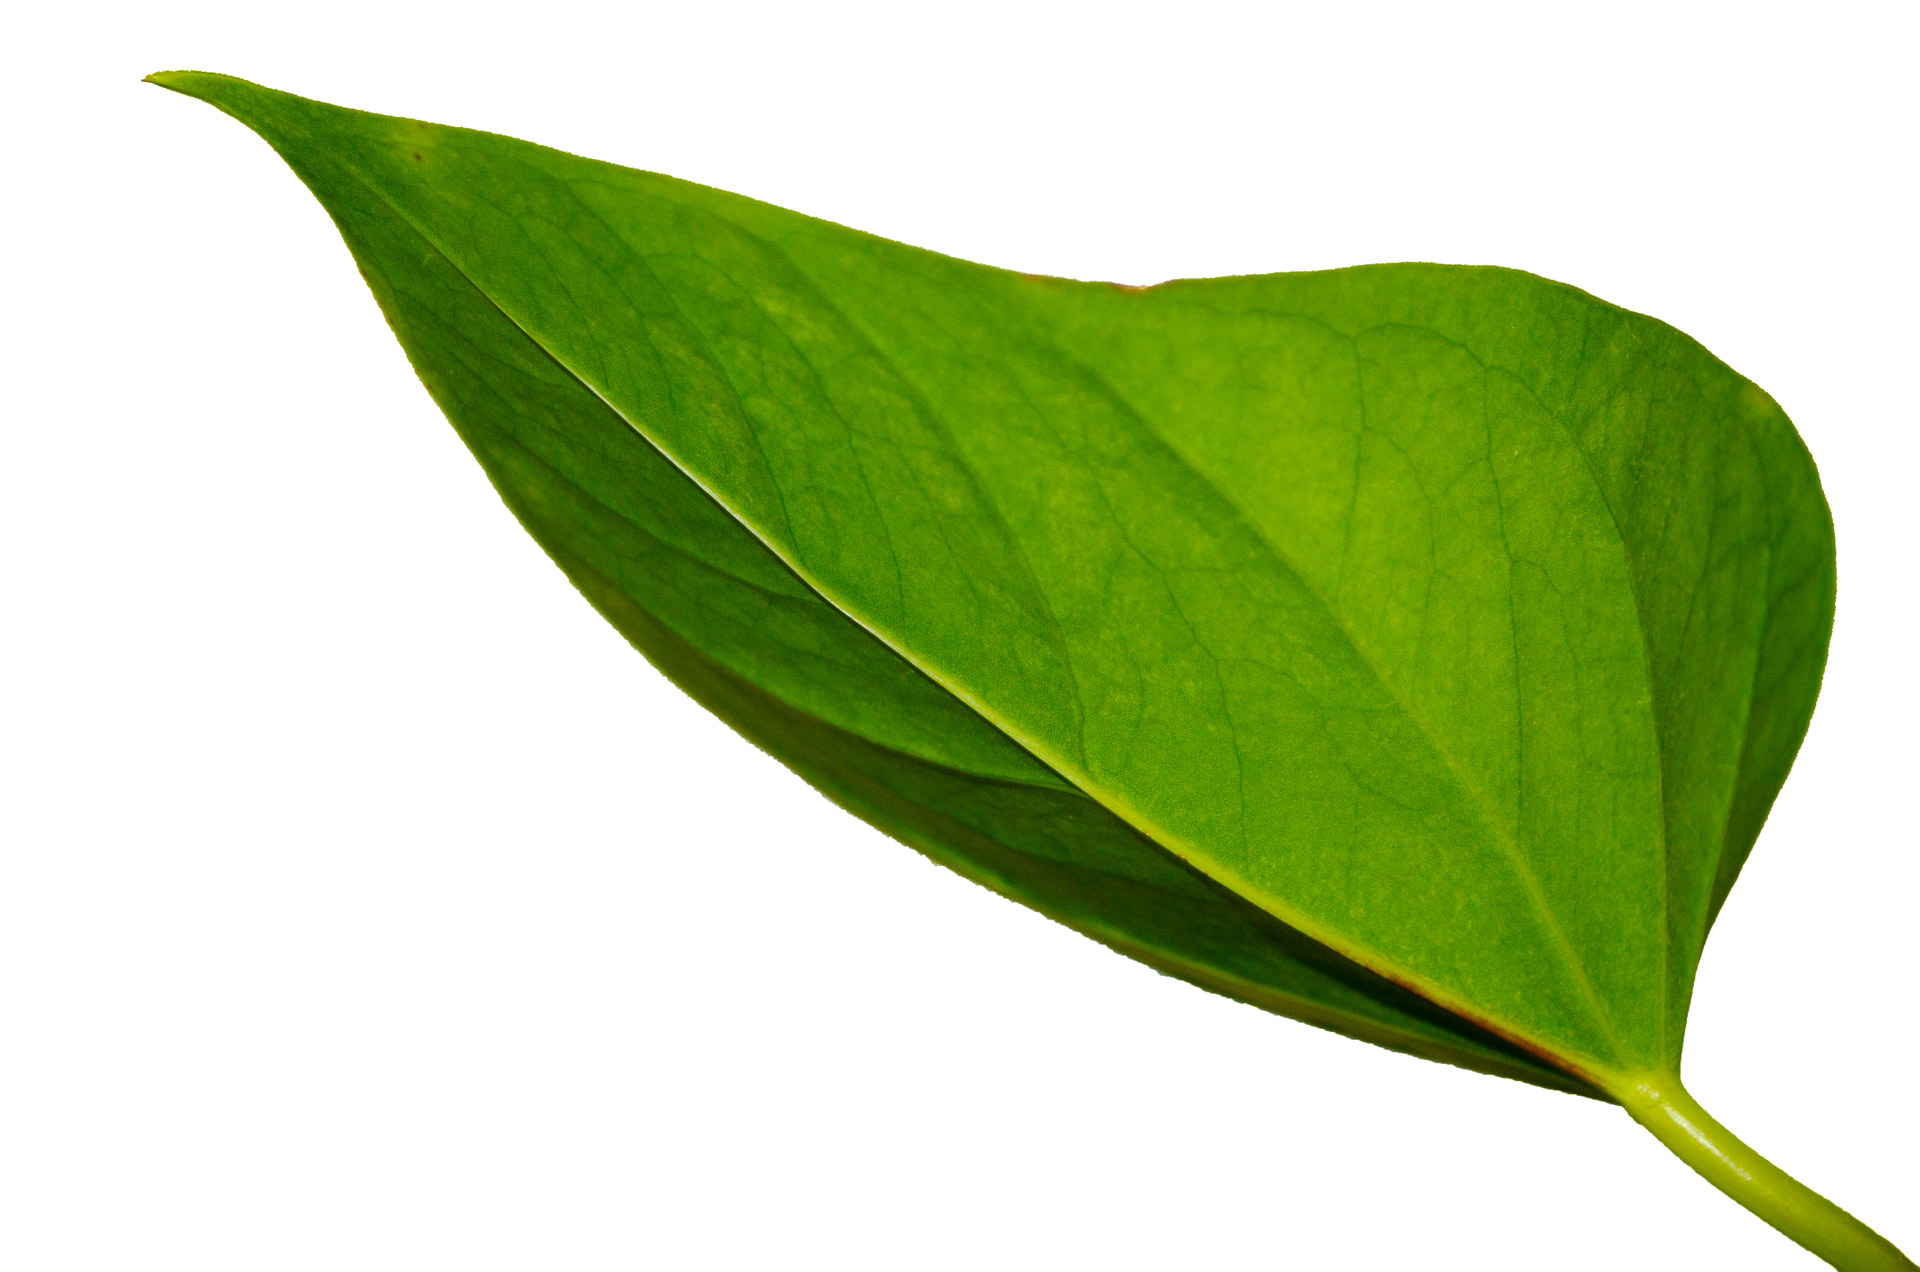 Green Leaf Free Stock Photo - Public Domain Pictures